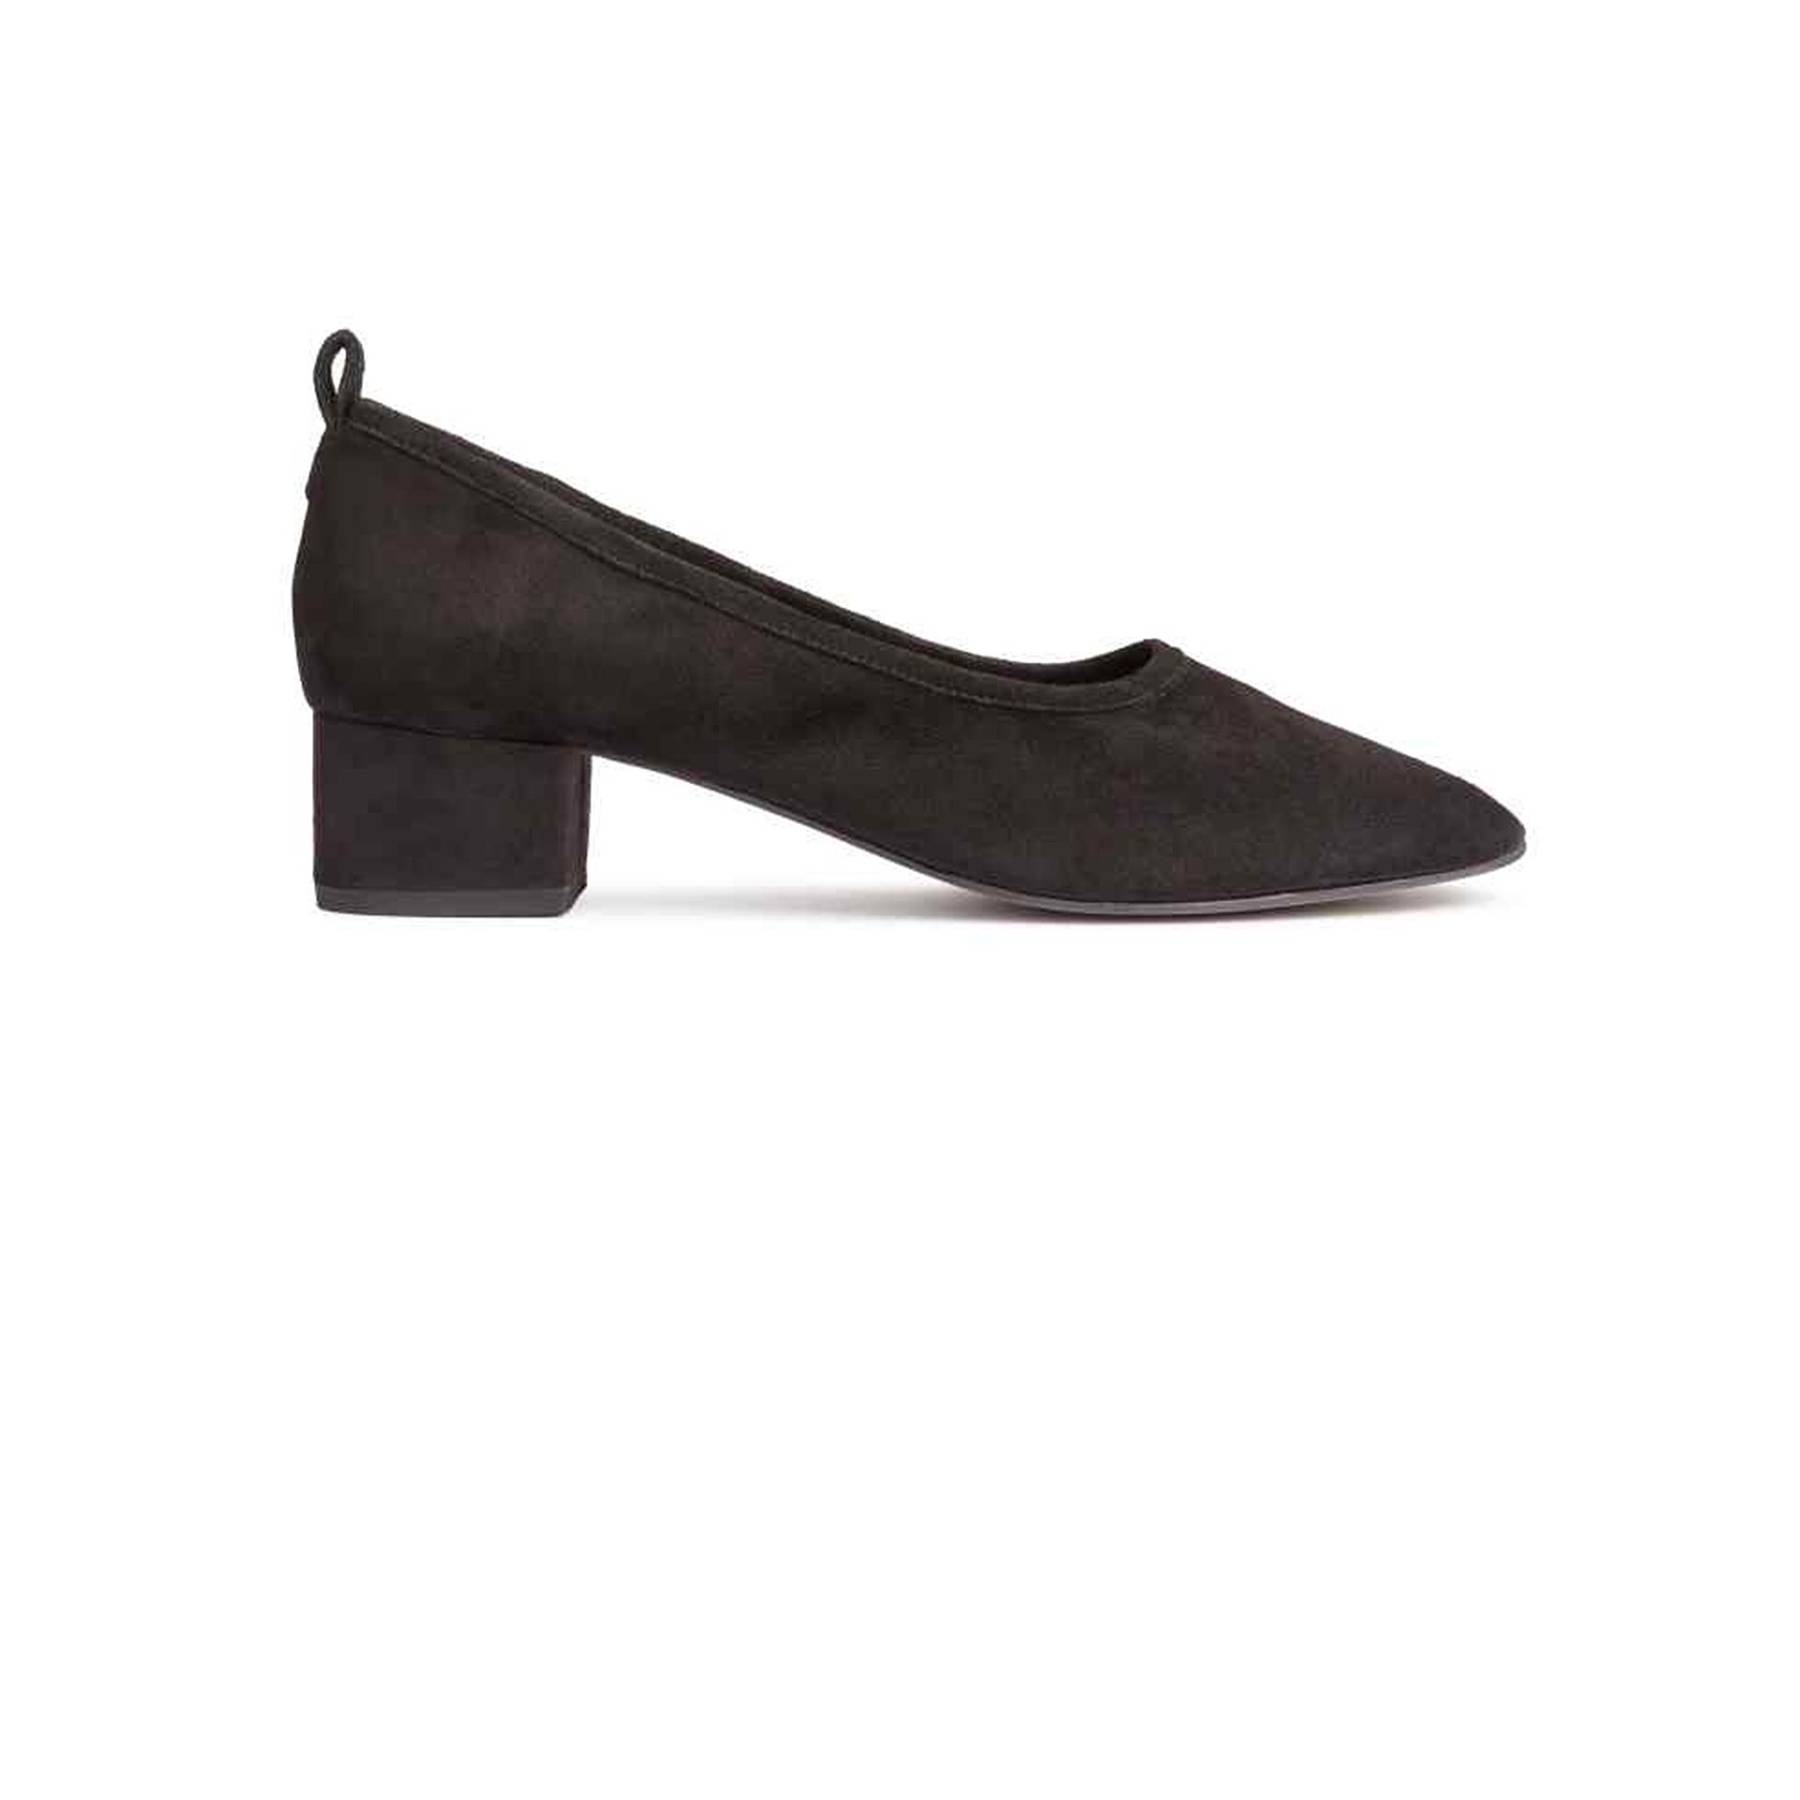 Ballet Pumps And Block Heel Shoes Fashion Trend Glamour Uk High Heels Suede